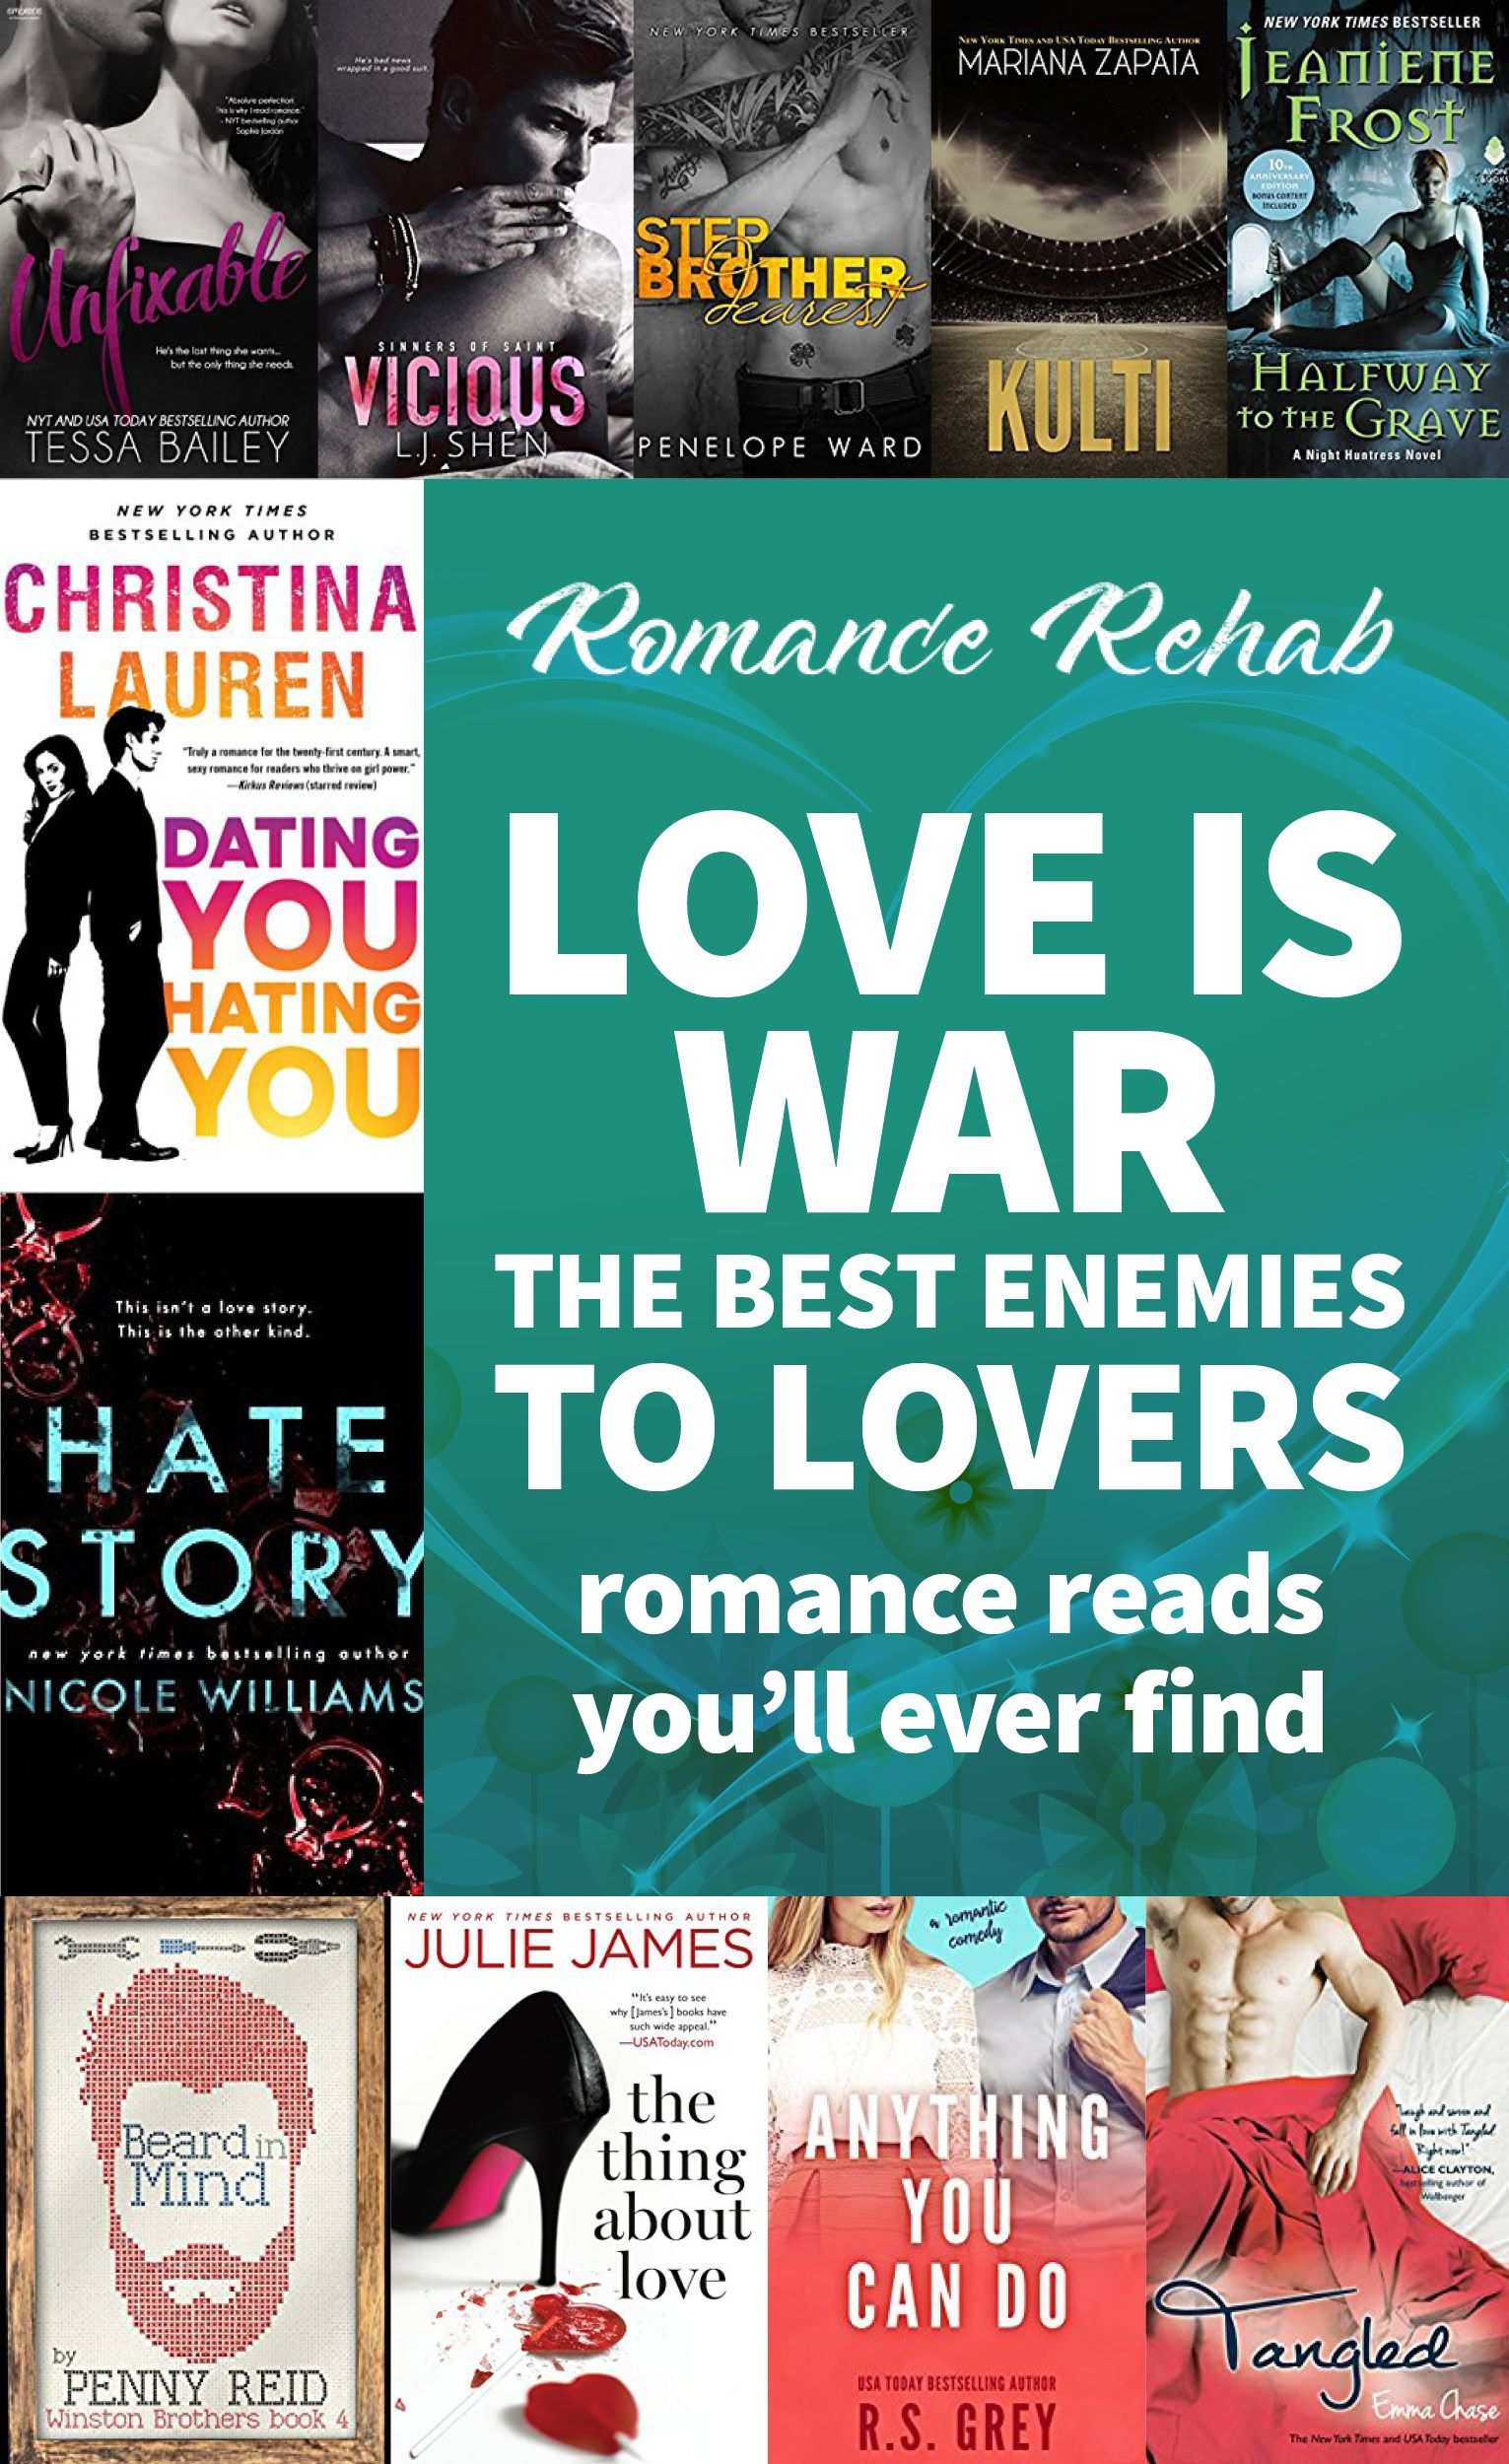 Love Is War The Best Enemies To Lovers Romance Reads You Ll Ever Find Reading Romance Good Romance Books Lovers Romance